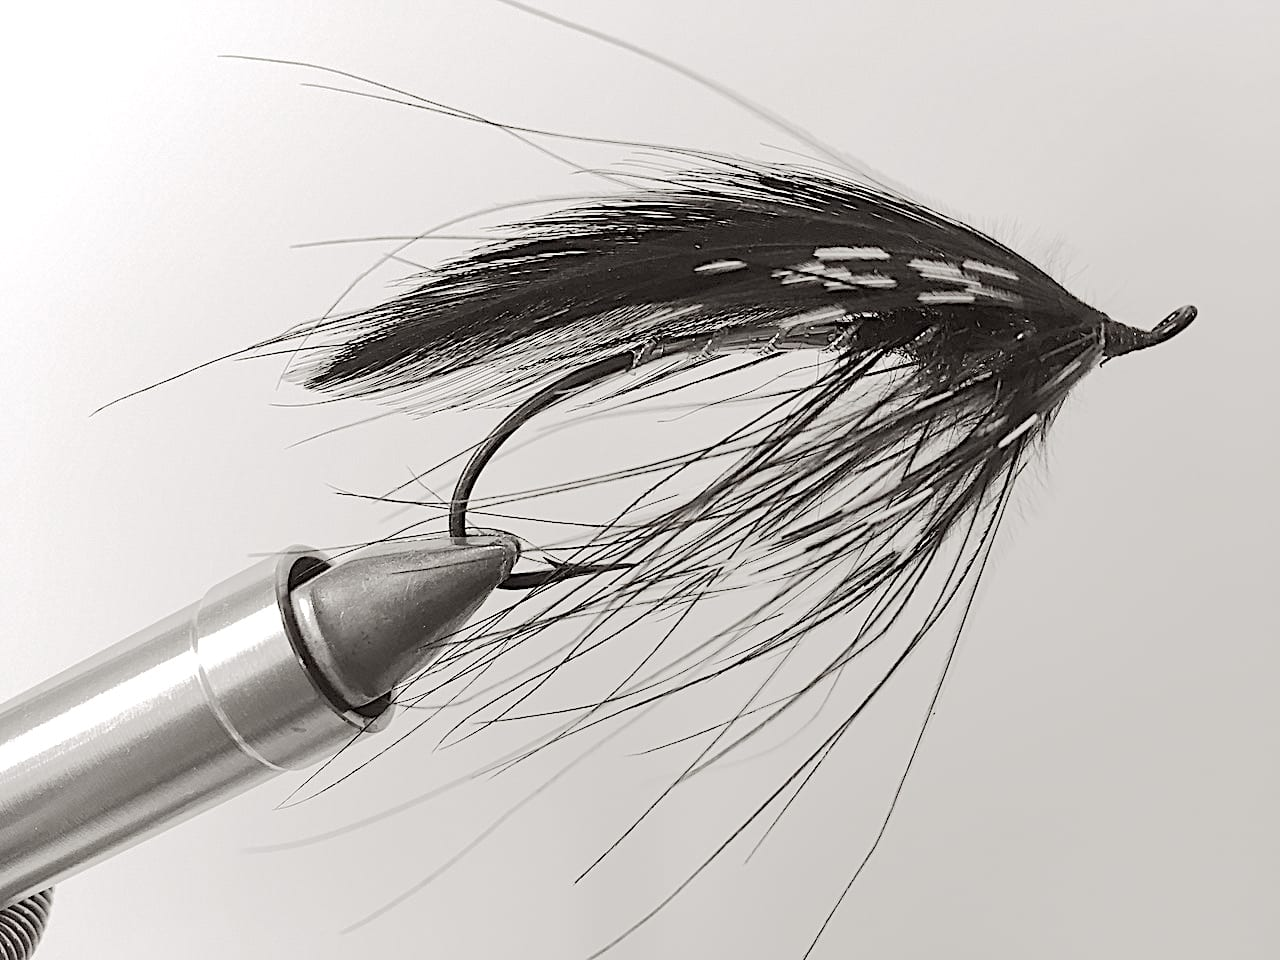 Black Heron Spey Fly - Spey Flies